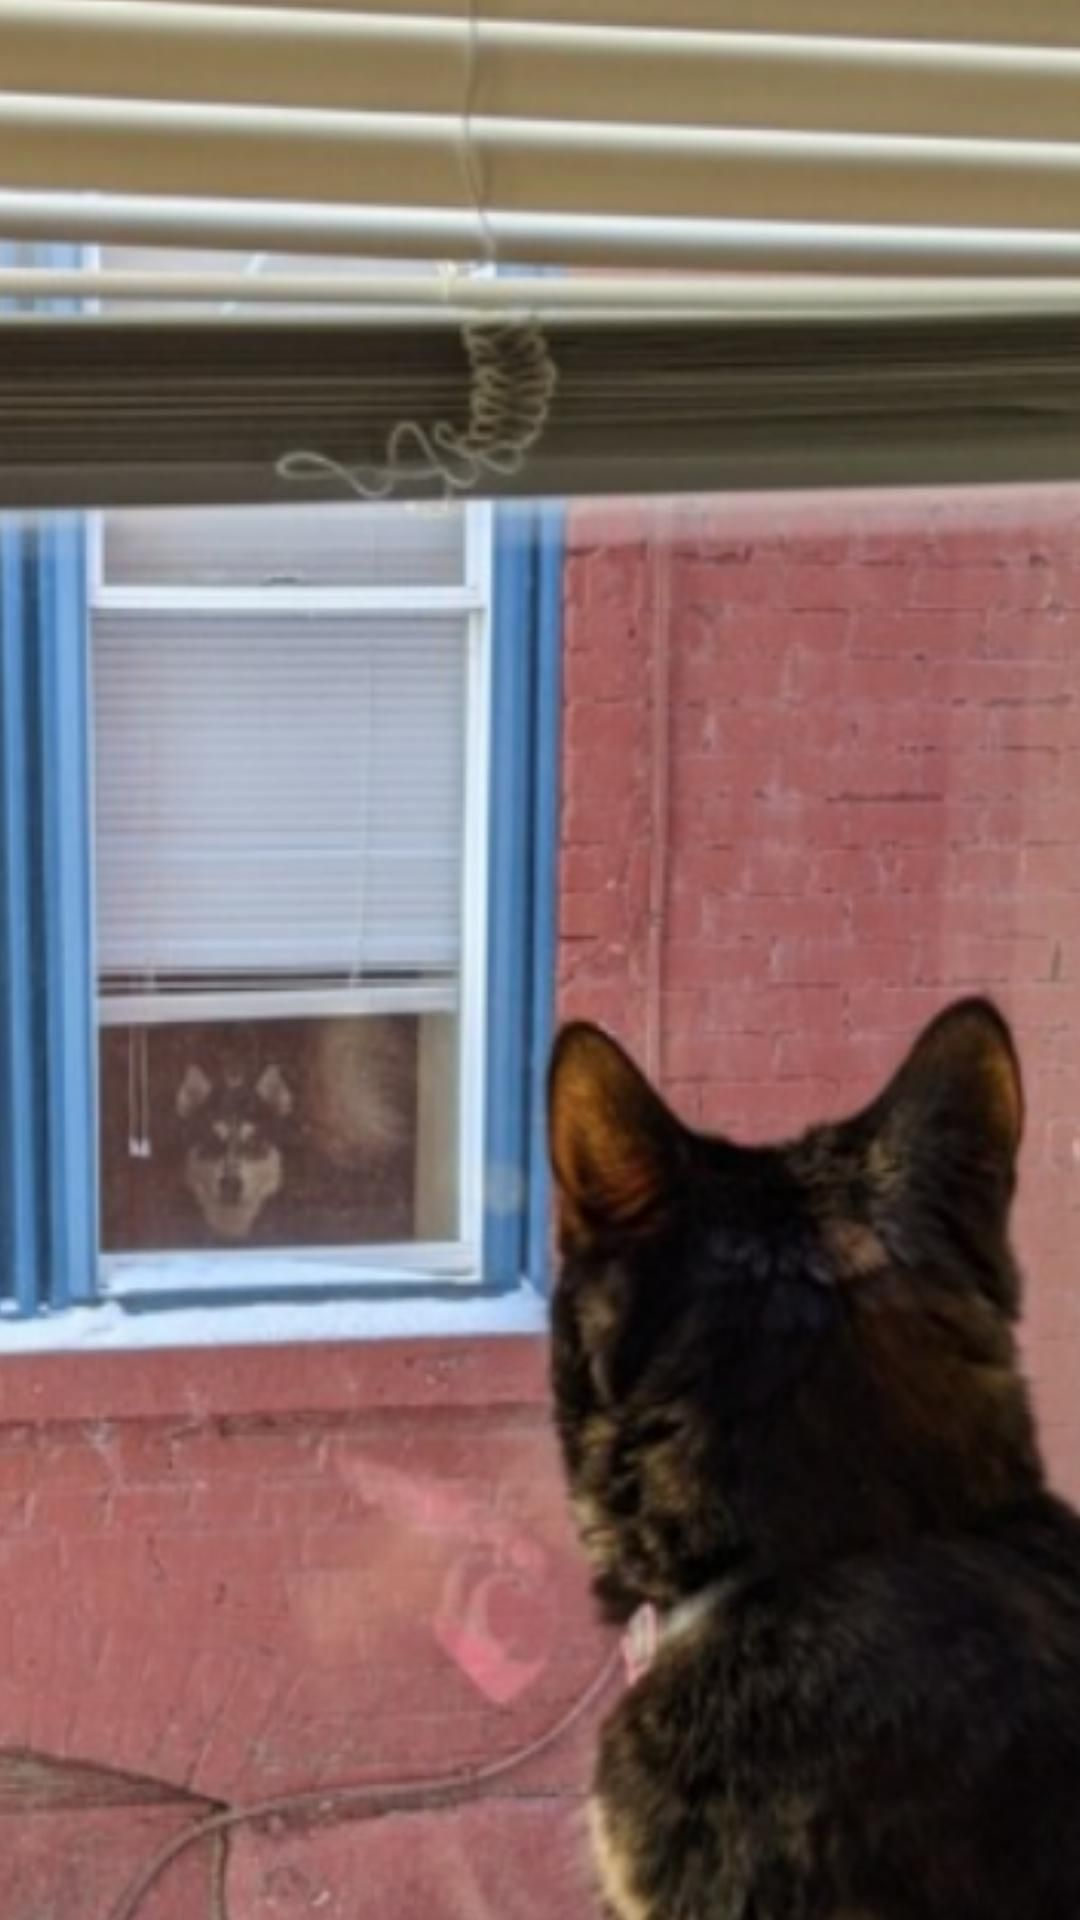 My cat and the neighbor's dog staring each other down everyday. This is their lives now...